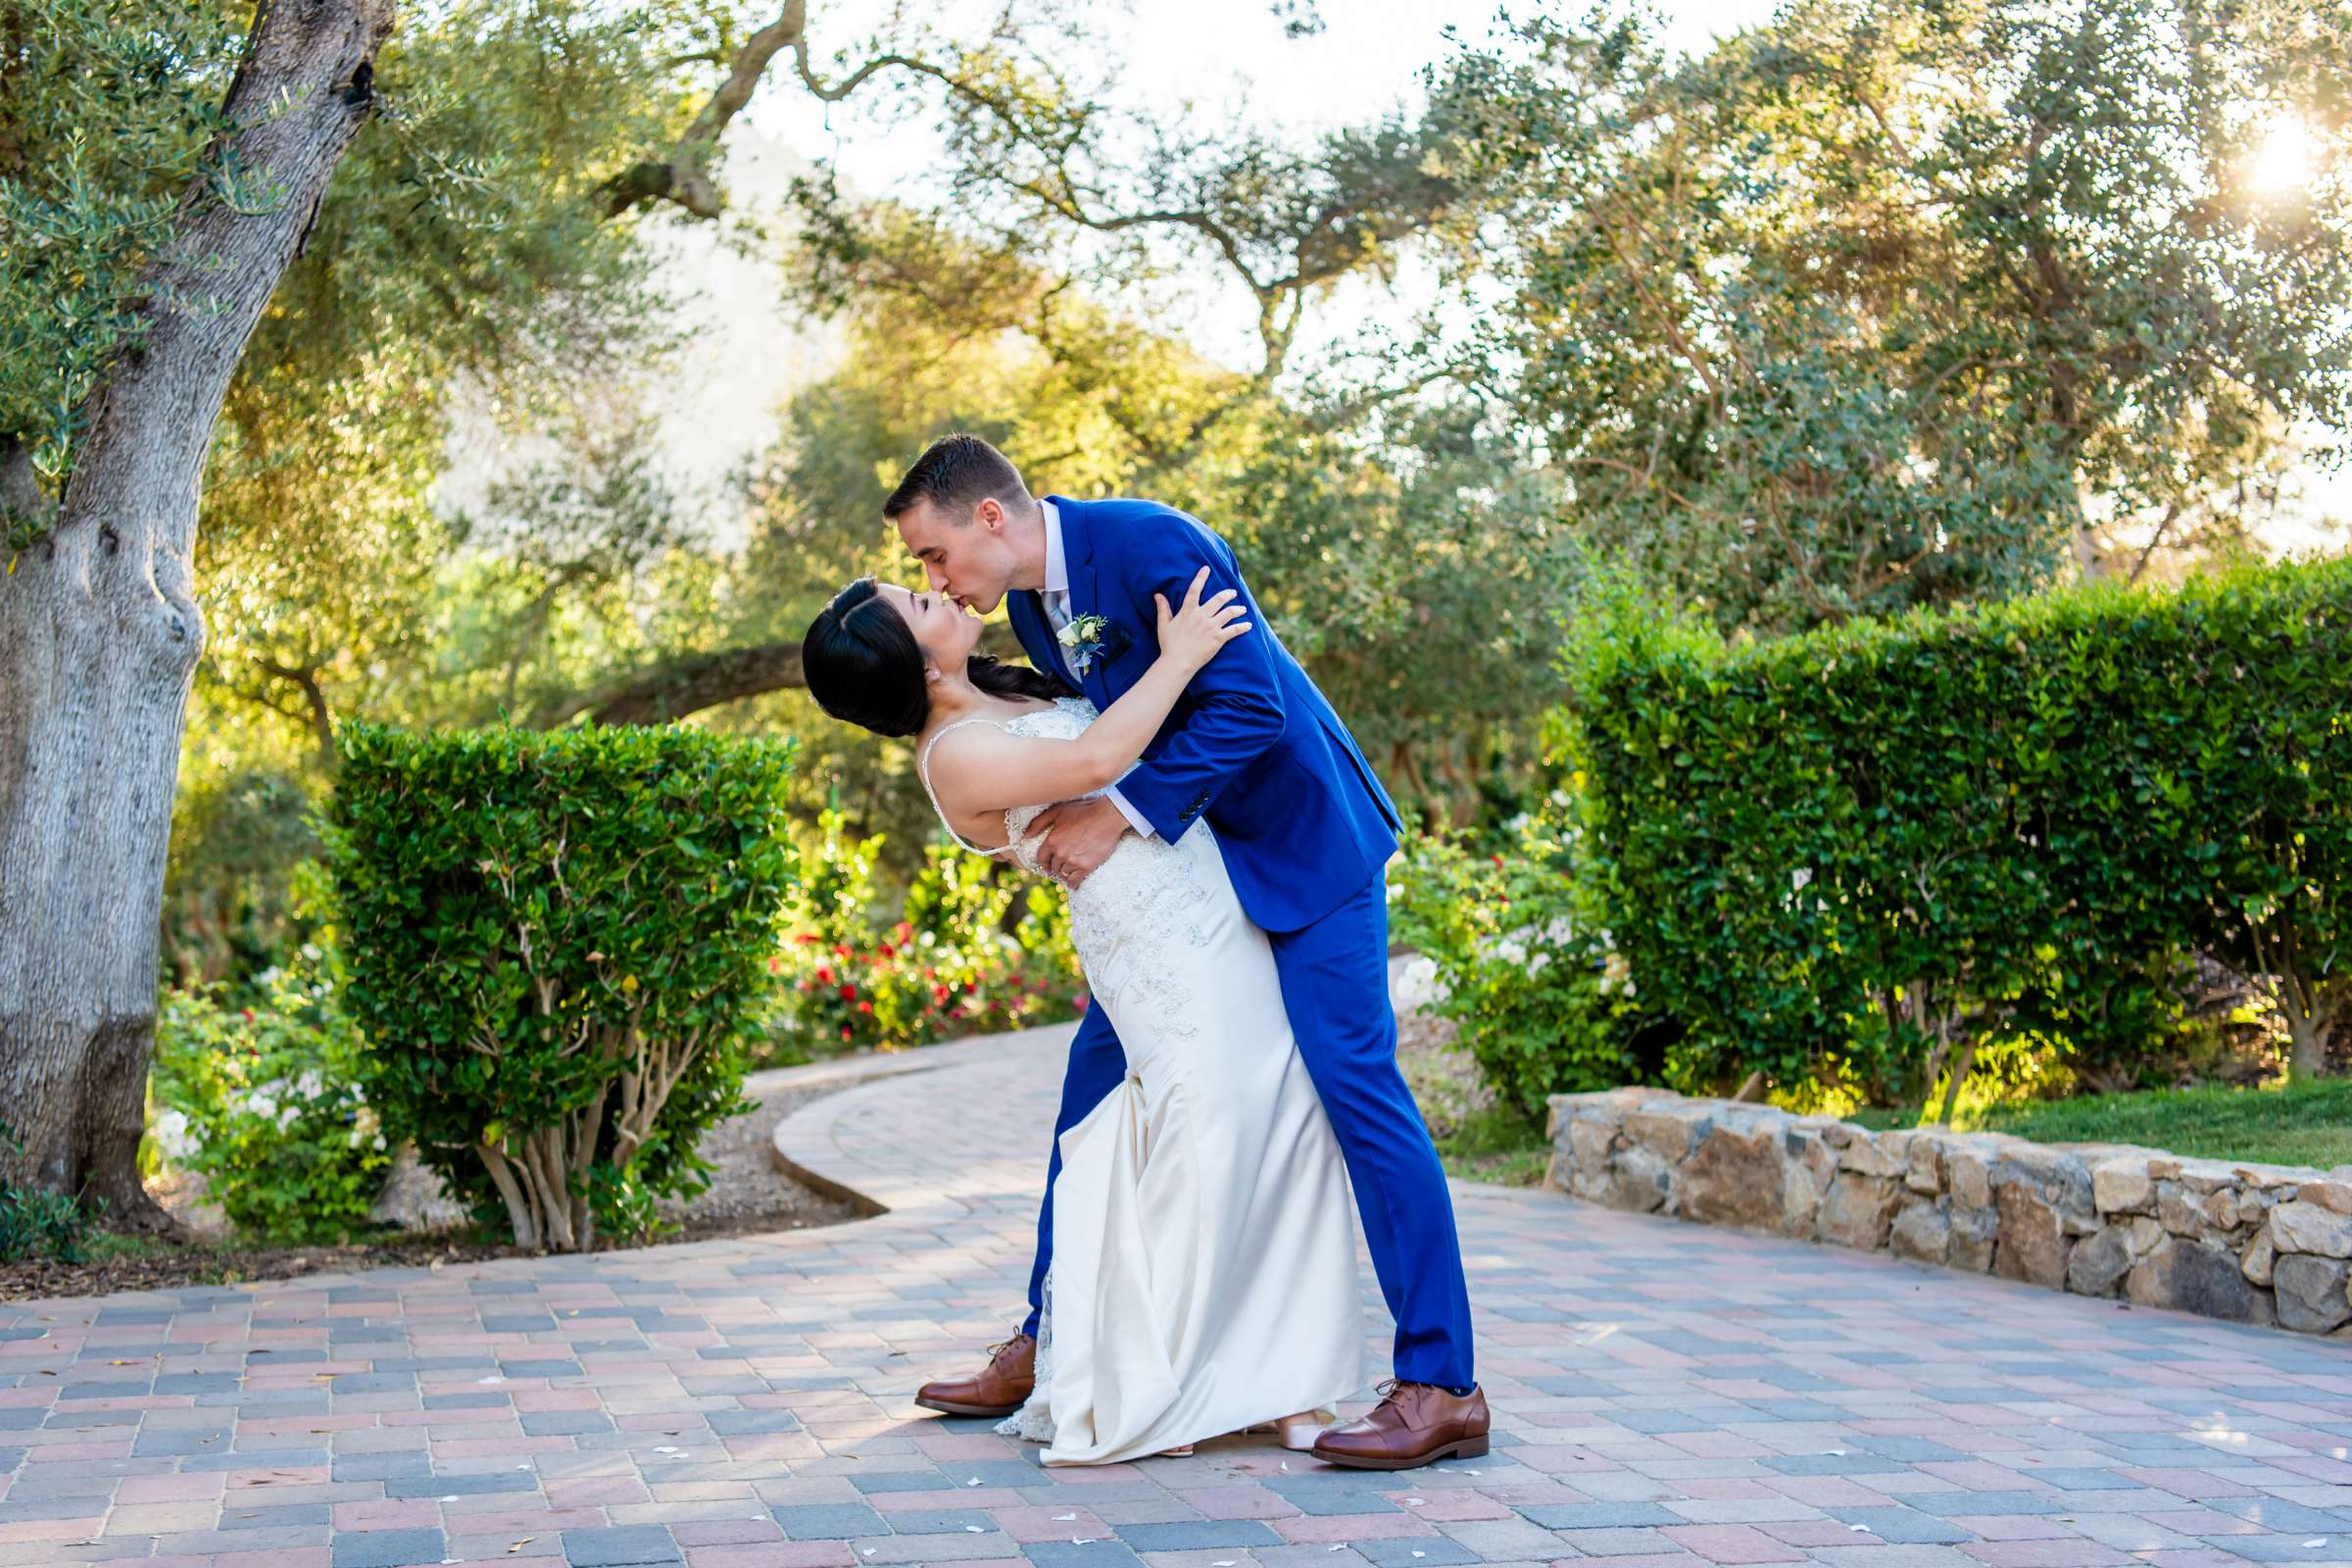 Mt Woodson Castle Wedding coordinated by I Do Weddings, Aya and Jared Wedding Photo #486980 by True Photography